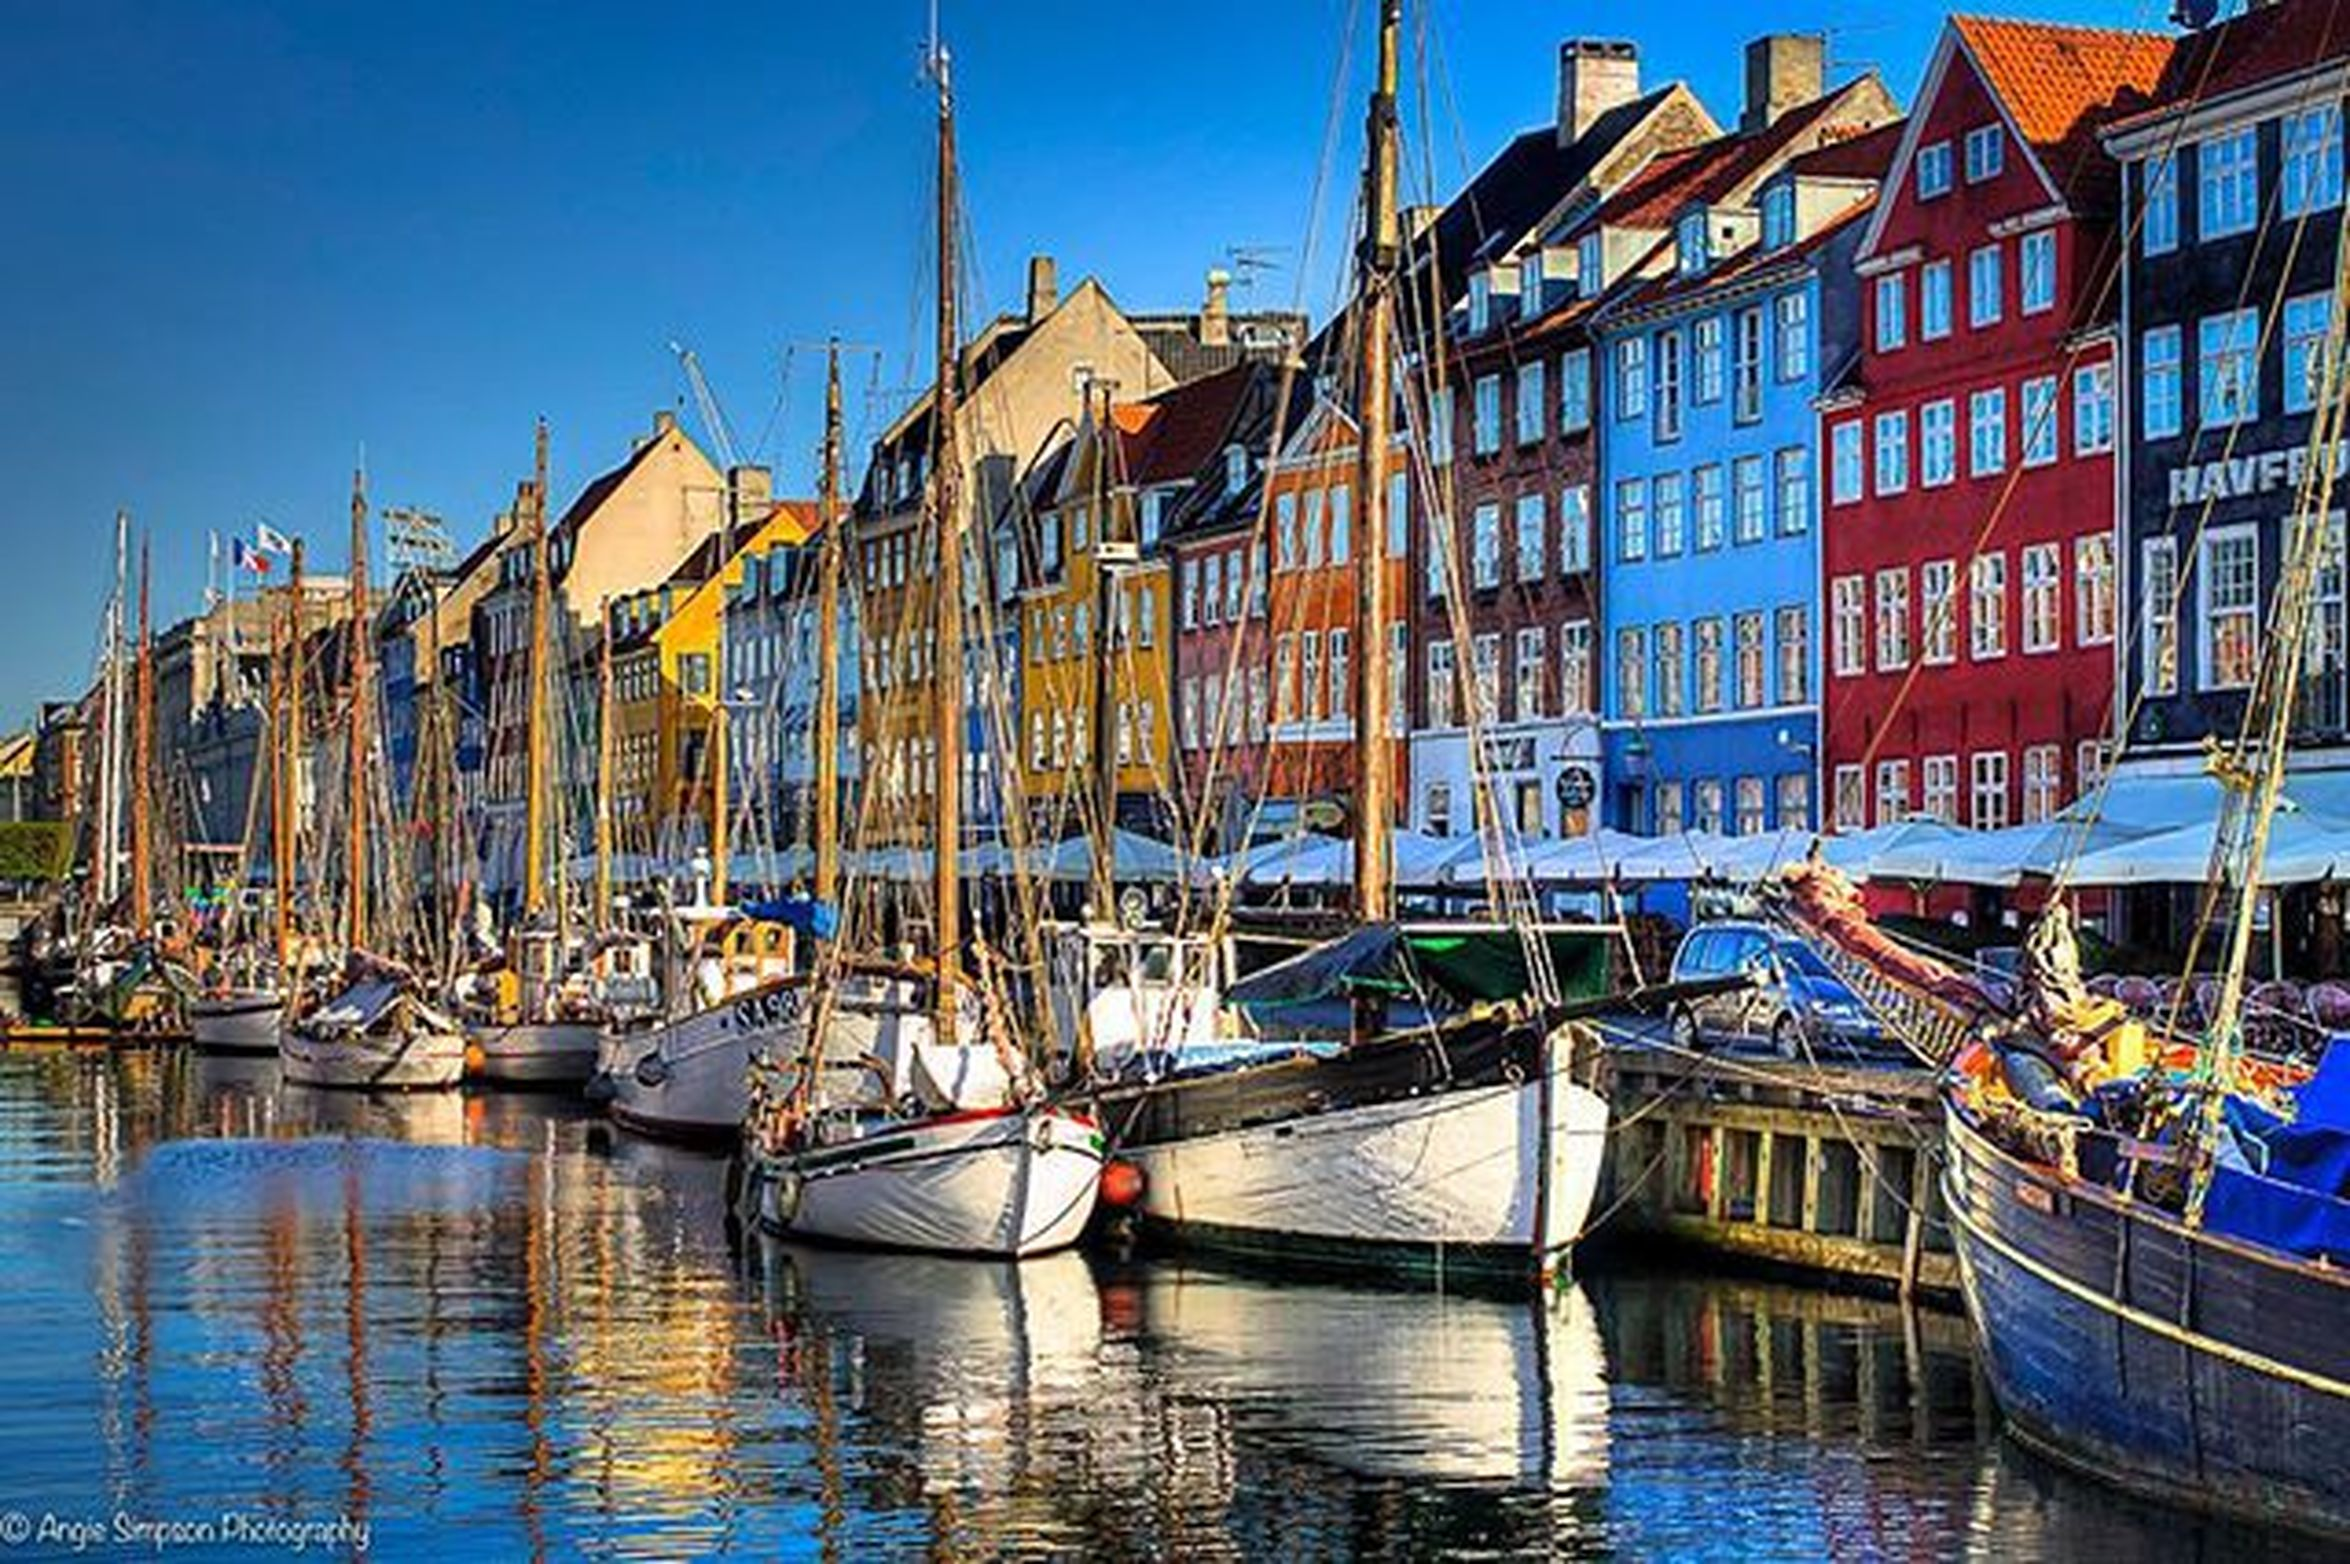 Travelgram Seetheworld  Traveltheworld Instatravel Tv_travel Traveldeeper Passionpassport Bestplaces_togo Igworldclub Ig_worldclub Exploringtheglobe Lonelyplanet Igerscopenhagen Igcopenhagen Visitdenmark Nyhavn Loves_architecture Art_chitecture Rsa_architecture Architectureporn Archilovers Arkiromantix Loves_cityscapes Total_city Rsa_streetview tv_buildings ig_worldclub ig_sharepoint everyshots